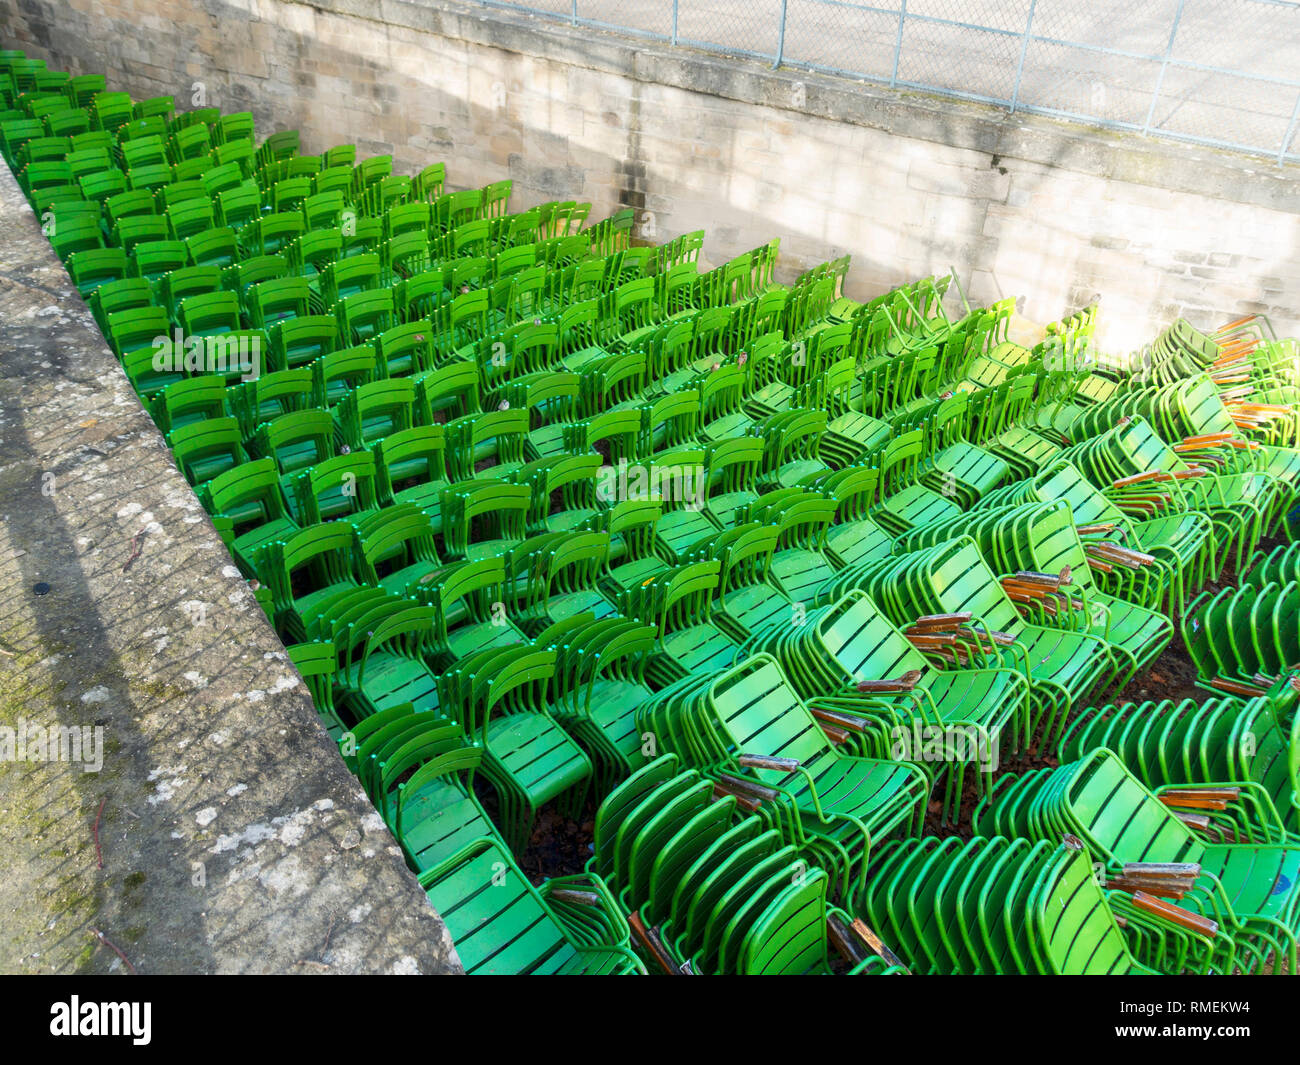 Stacks of Chairs in Stock Photo